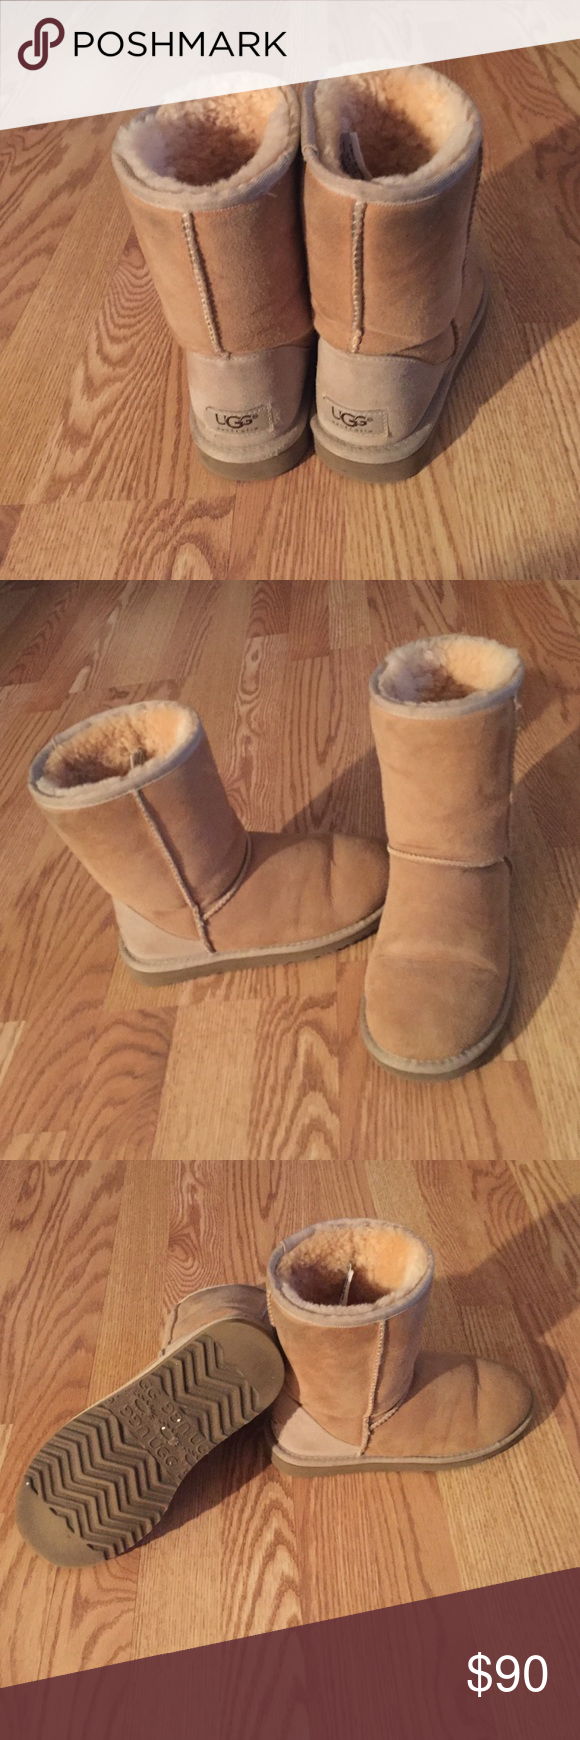 •authentic UGGS• AUTENTIC •short • tan colored UGGS! all offers considered! will include water & stain repellent for sheepskin & suede! UGG Shoes Winter & Rain Boots